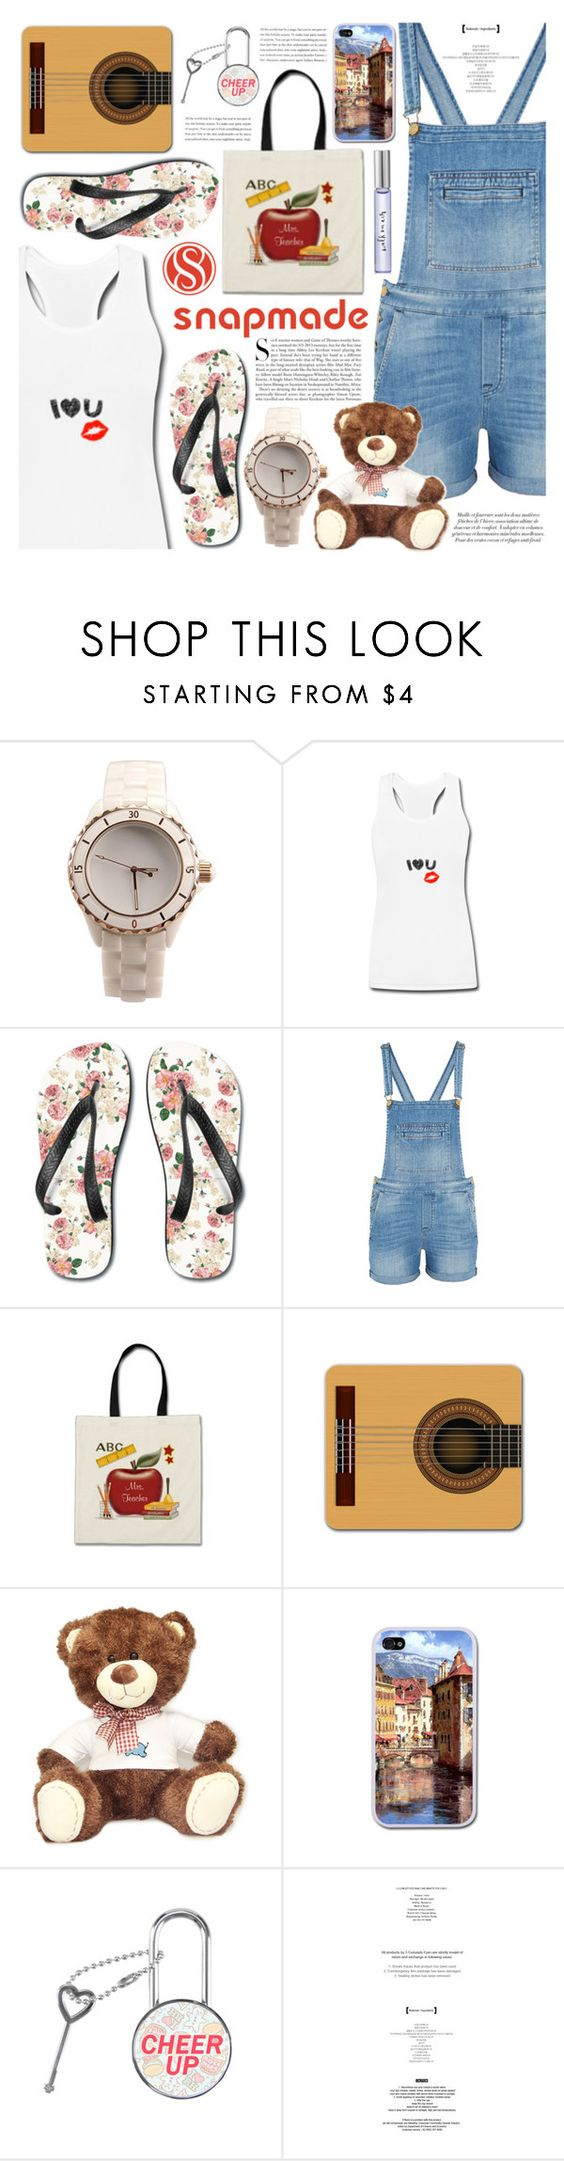 """""""Snapmade Cute Collection"""" by gorgeautiful ❤ liked on Polyvore featuring 7 For All Mankind, Kershaw, Kate Spade, BackToSchool, casualoutfit, accessories and snapmade"""